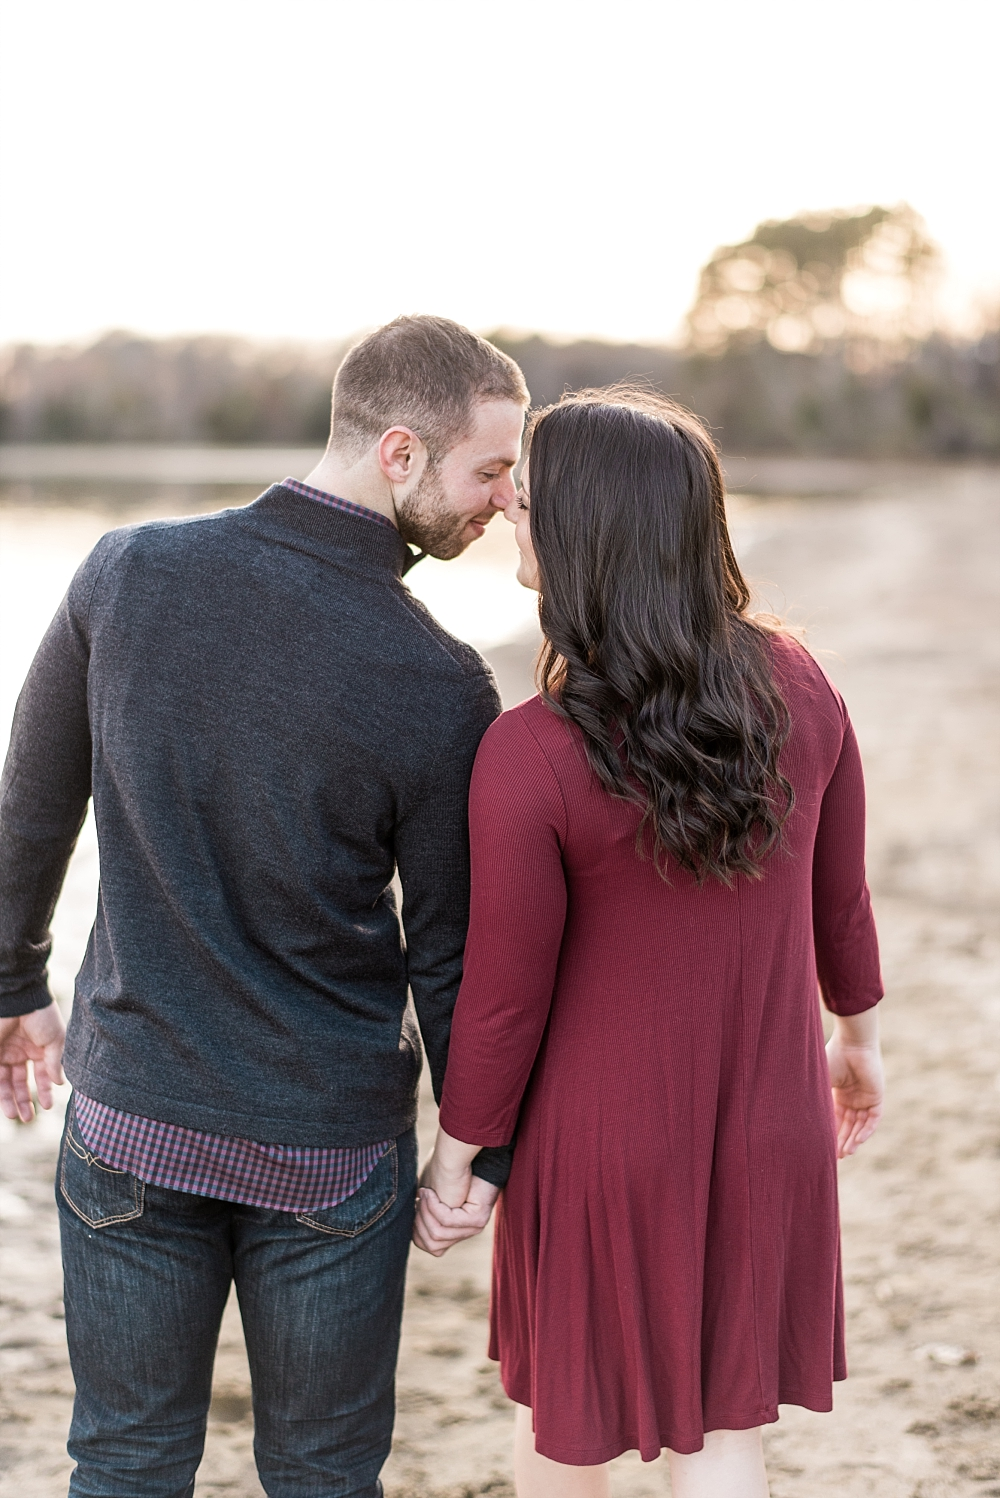 JuicebeatsPhotography_KnoxvilleEngagement_Kristina&Ben_0022.jpg